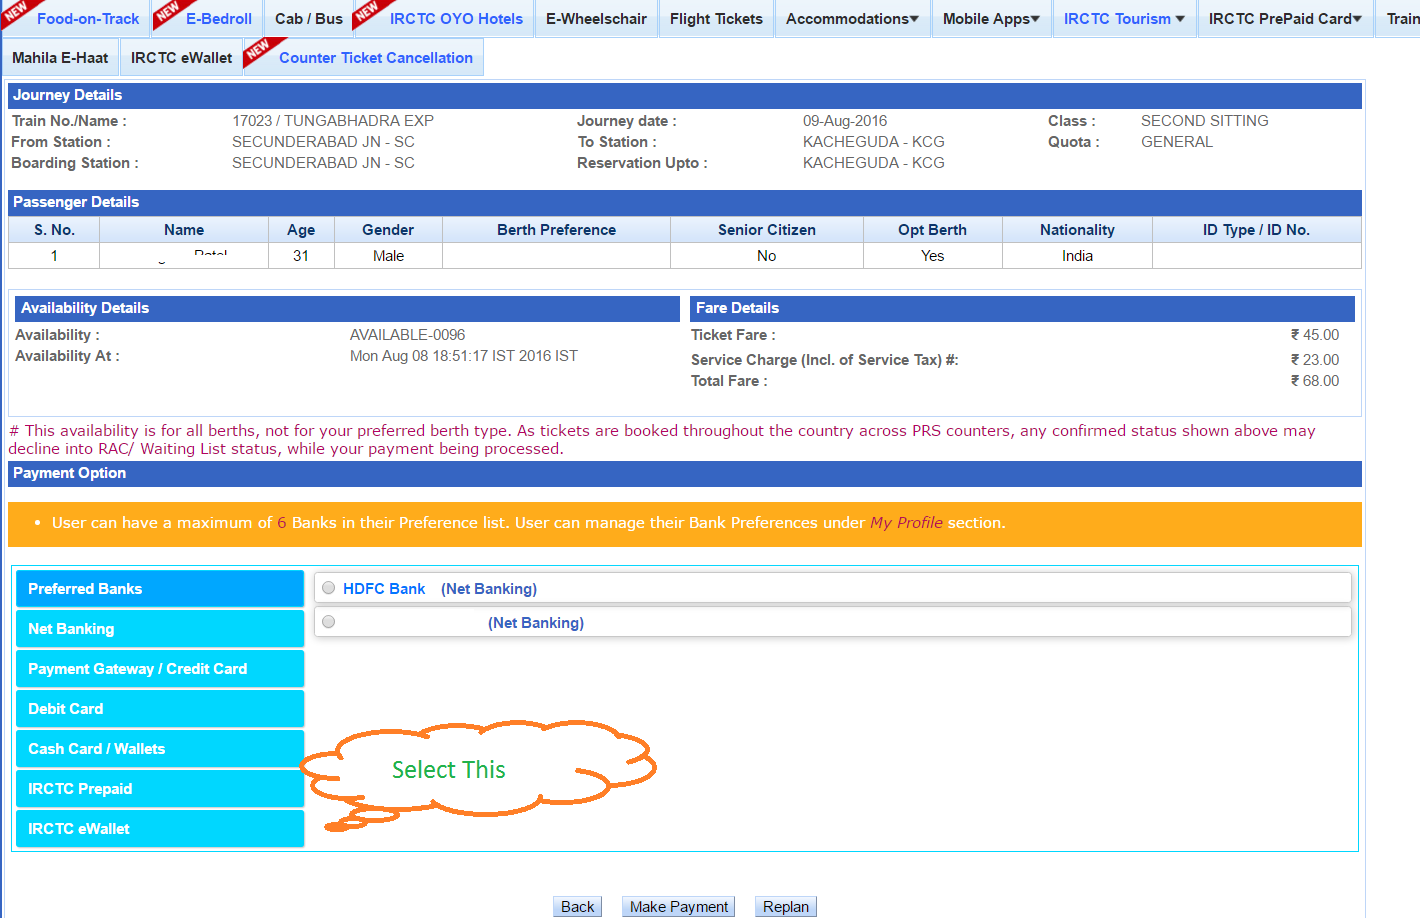 IRCTC eWallet Train booking